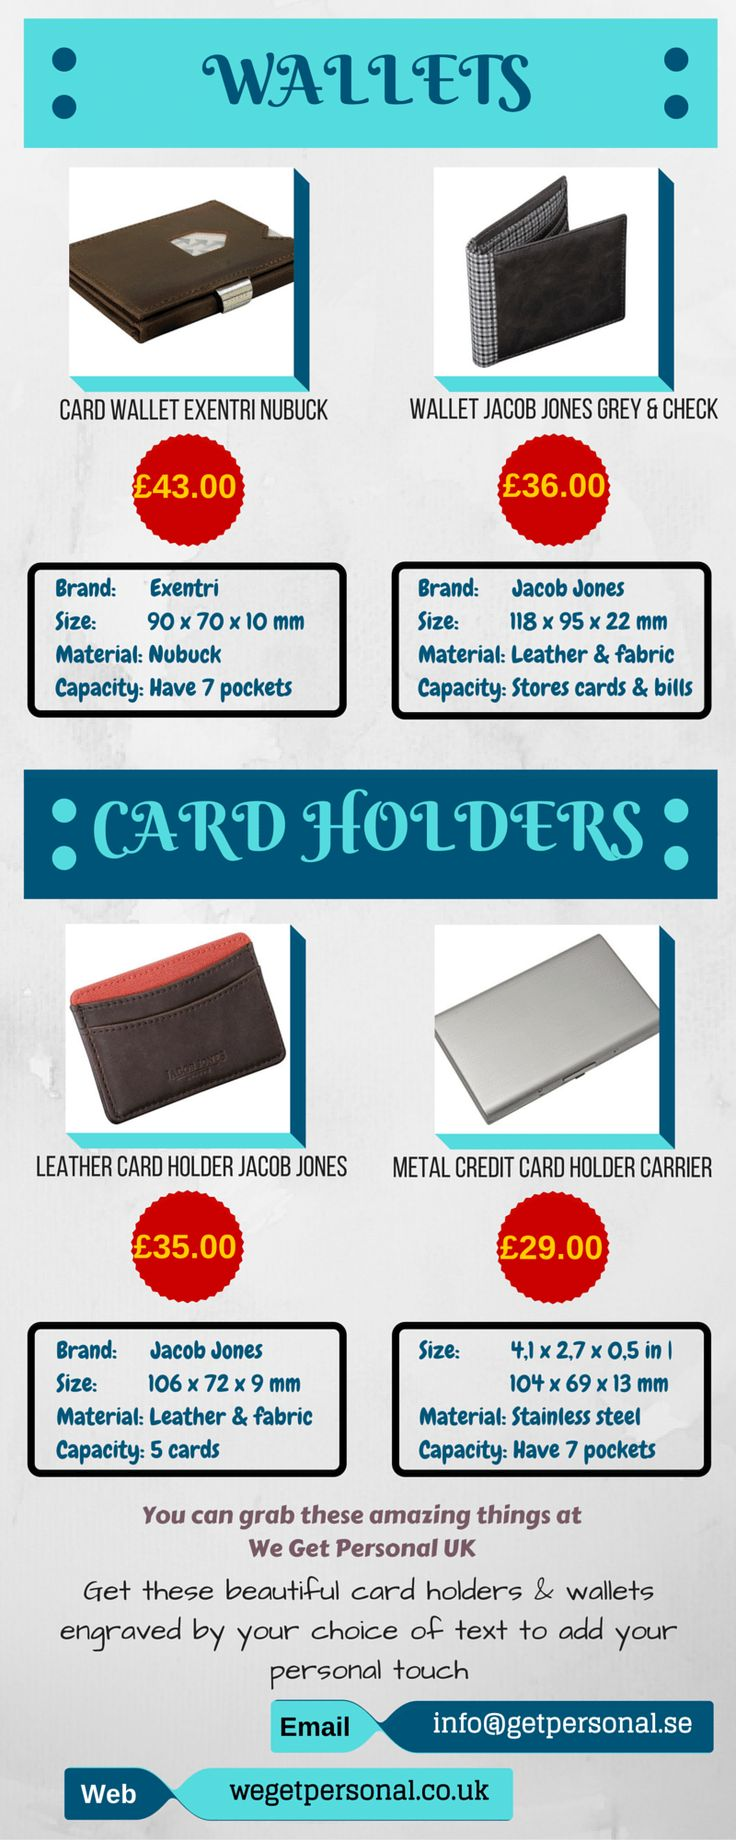 Take a look at this classy and stylish collection of card holders and wallets. These are pocket sized and very trendy to carry. You can use it to keeping visiting cards, credit cards, debit cards, ids and many more. You can carrying it along with you in your pocket or keep it in your purse, bag etc. at any where. If you want to see We Get Personal's personalised collection, visit us at wegetpersonal.co.uk #wallet #personalisedwallets #personalisedwallet #Engravedwallets  #personalisedcardhol